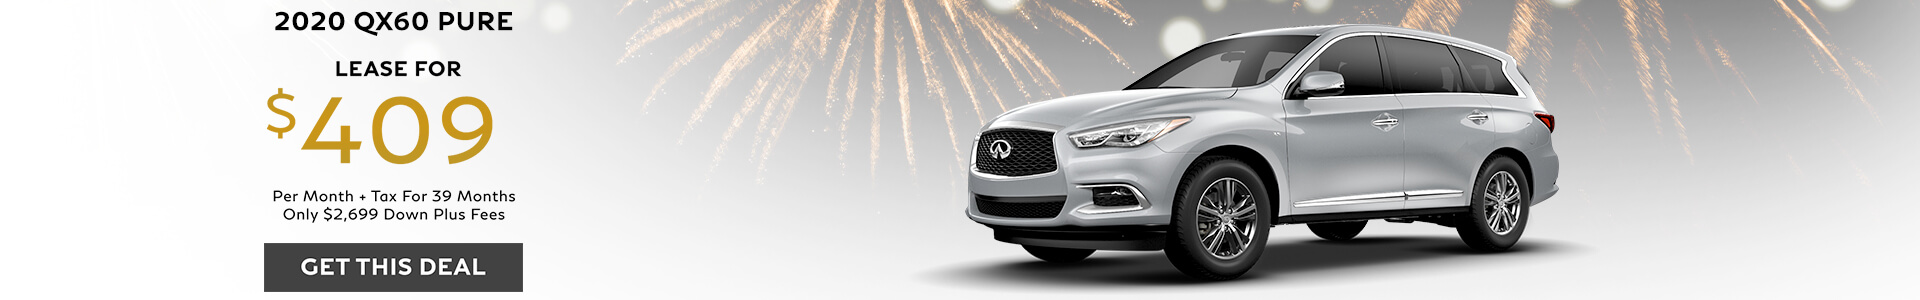 QX60 PURE - Lease for $409